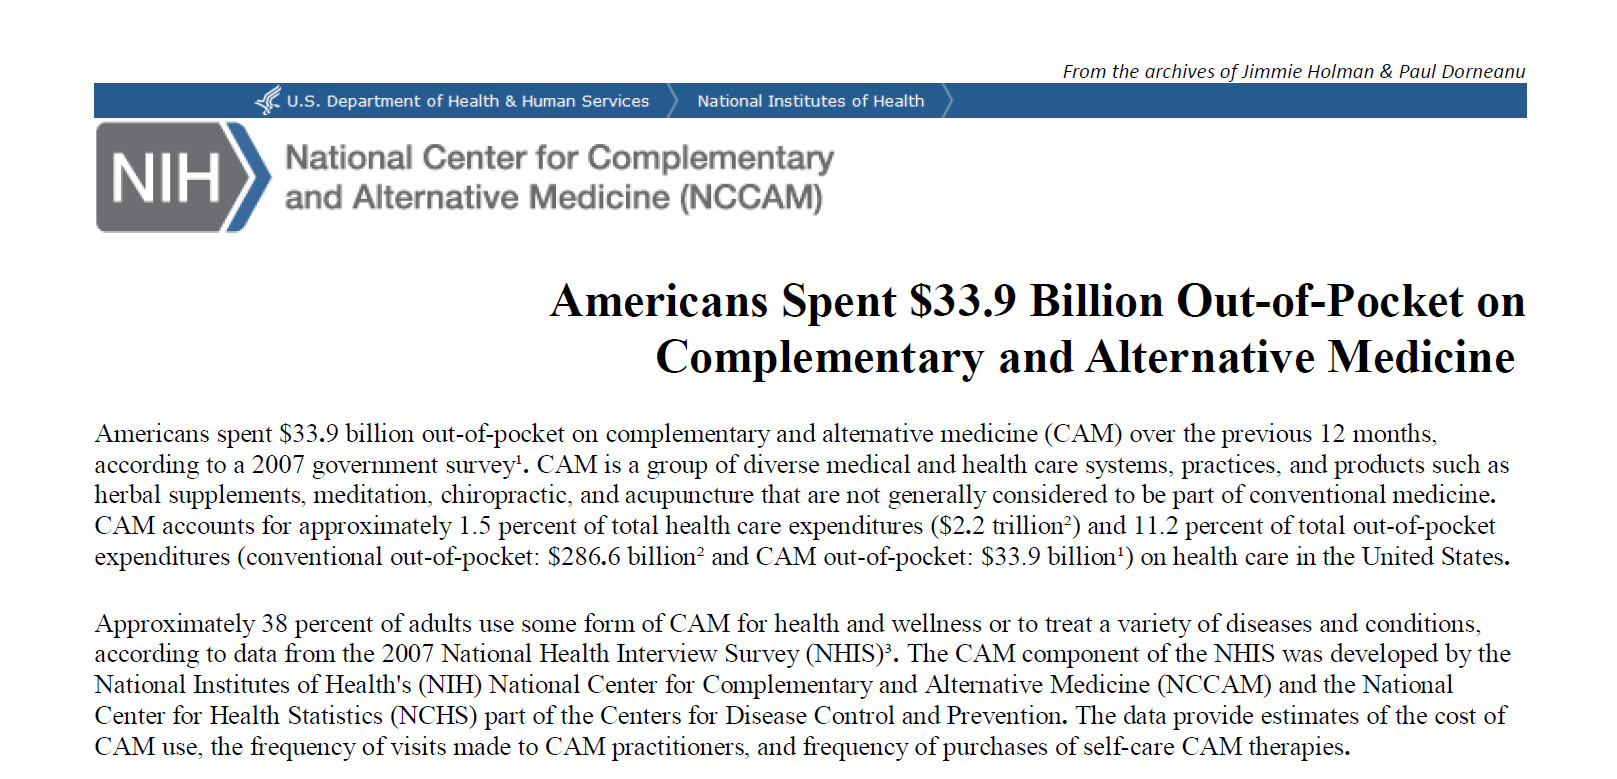 Americans Spent $33.9 Billion Out-of-Pocket on Complementary and Alternative Medicine